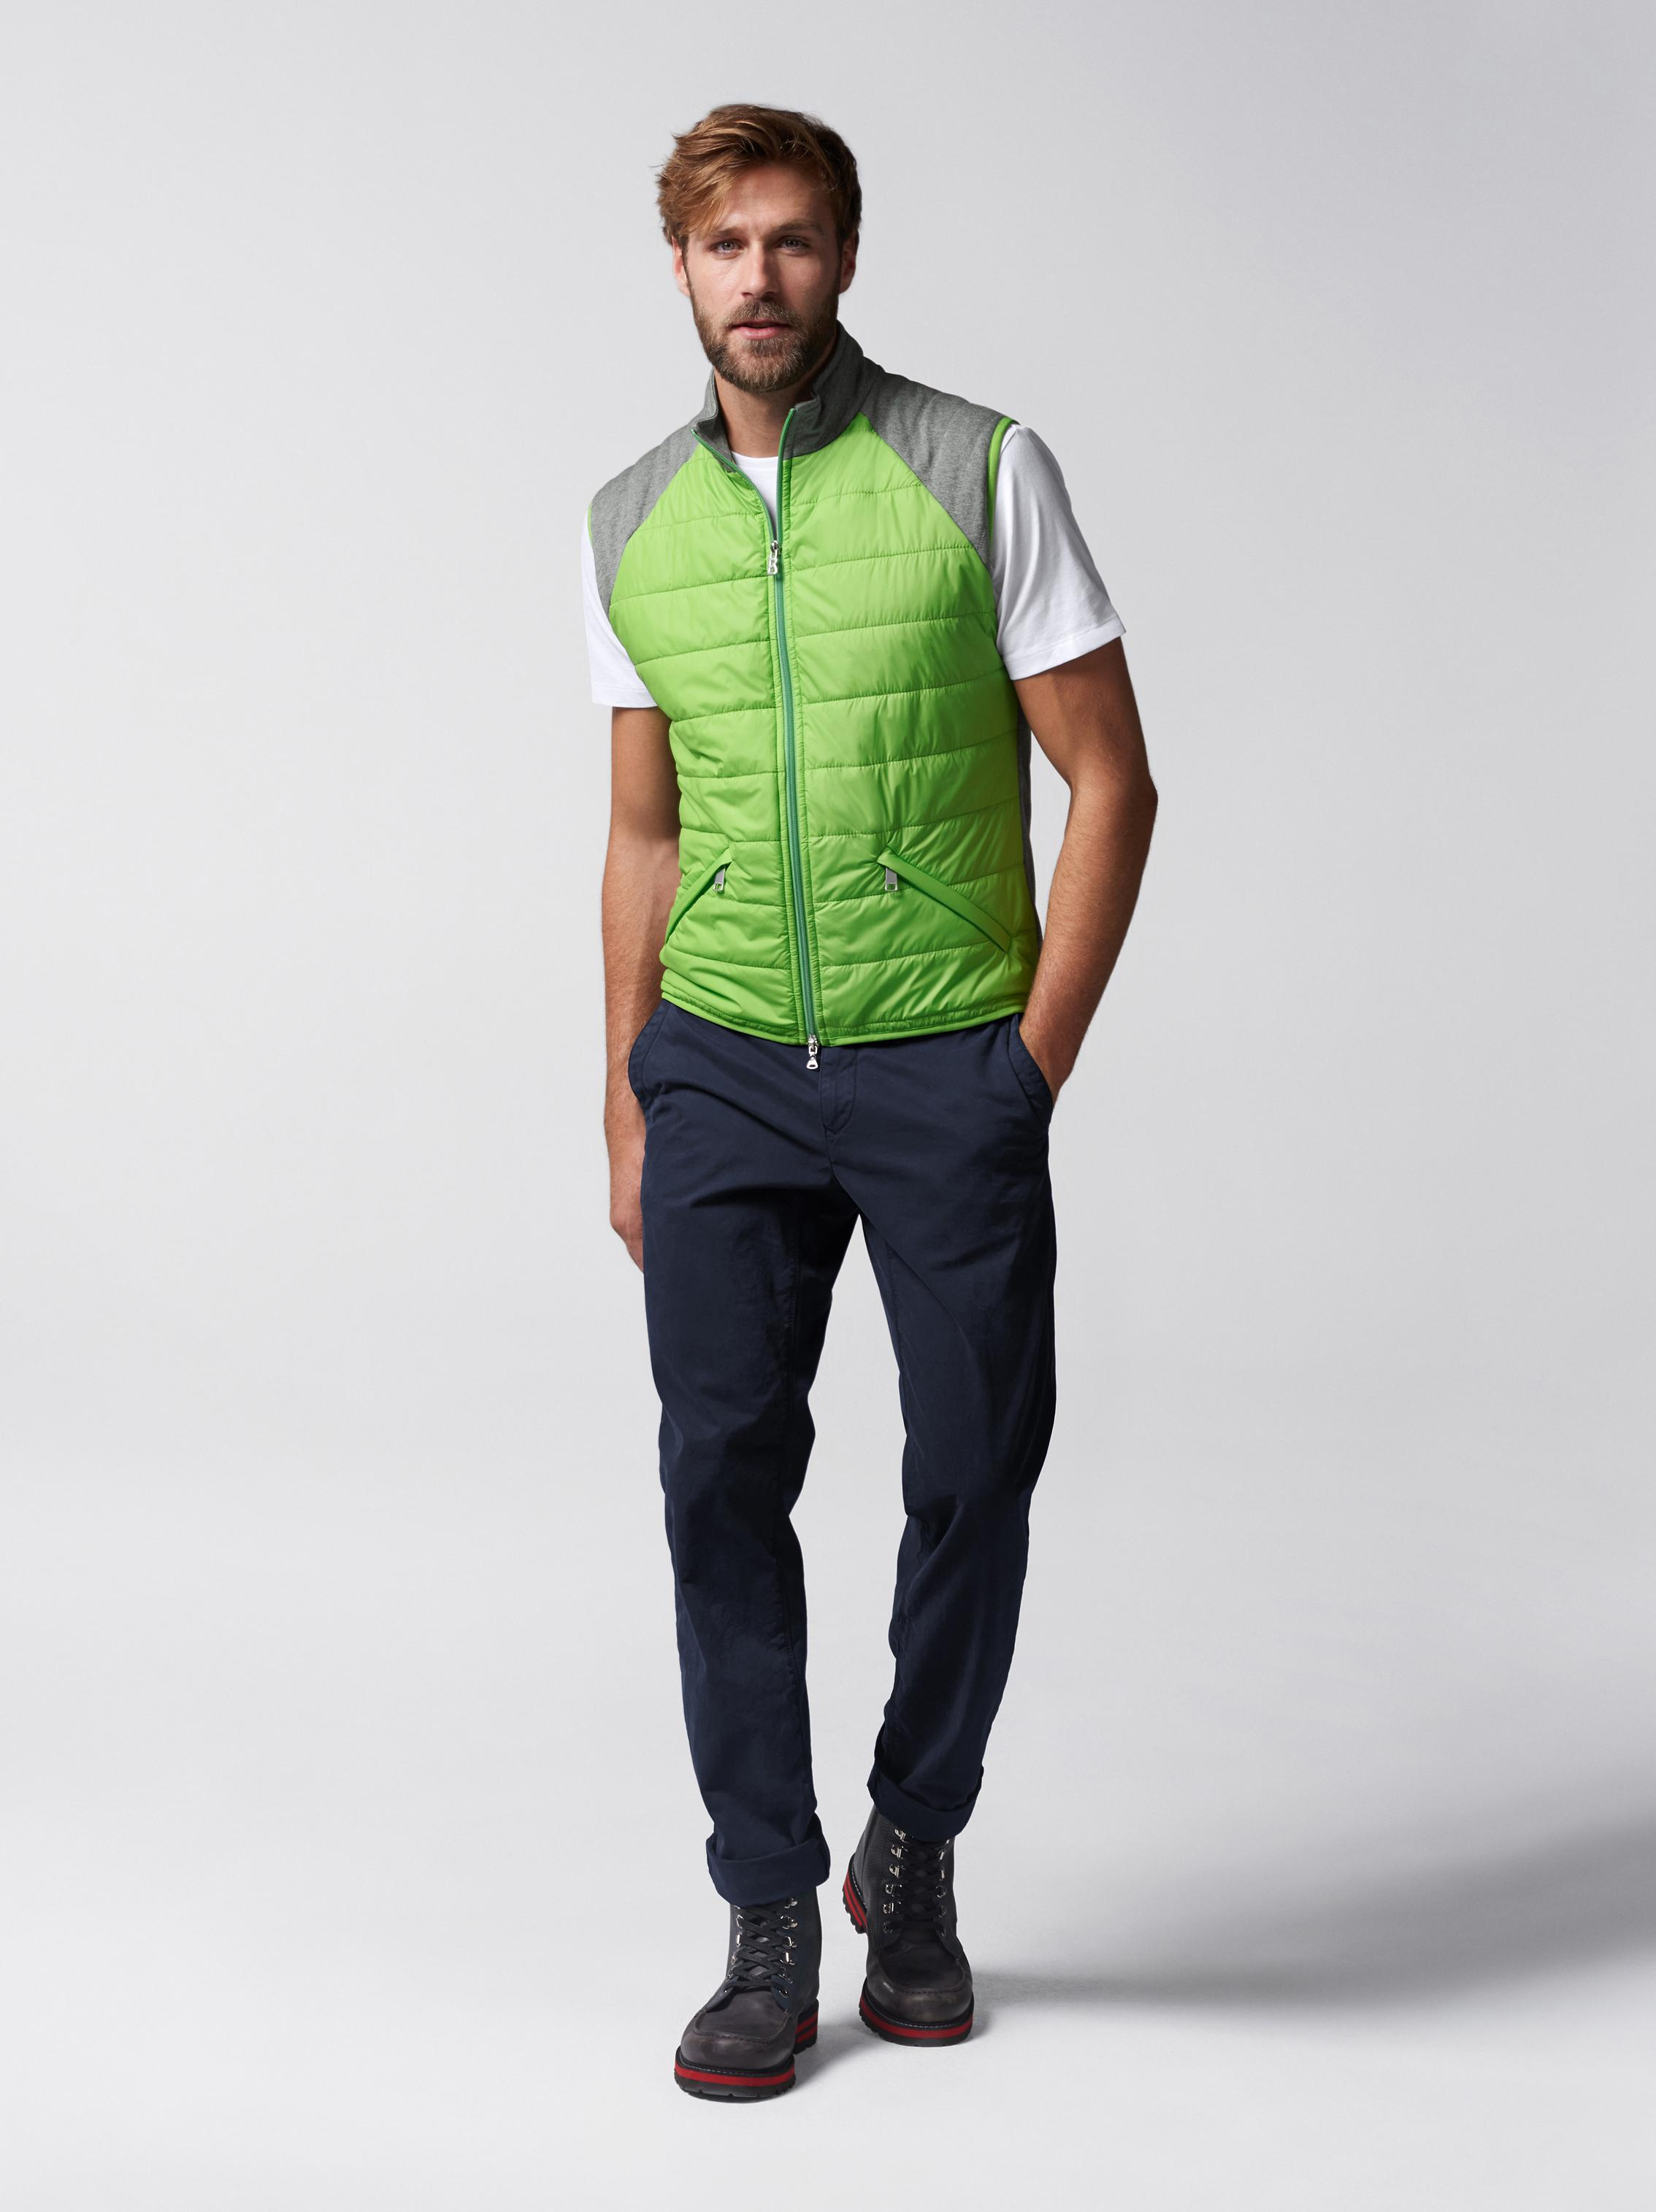 noble warm warmup up fig green quilt vest quilted outfitters back jacket outerwear